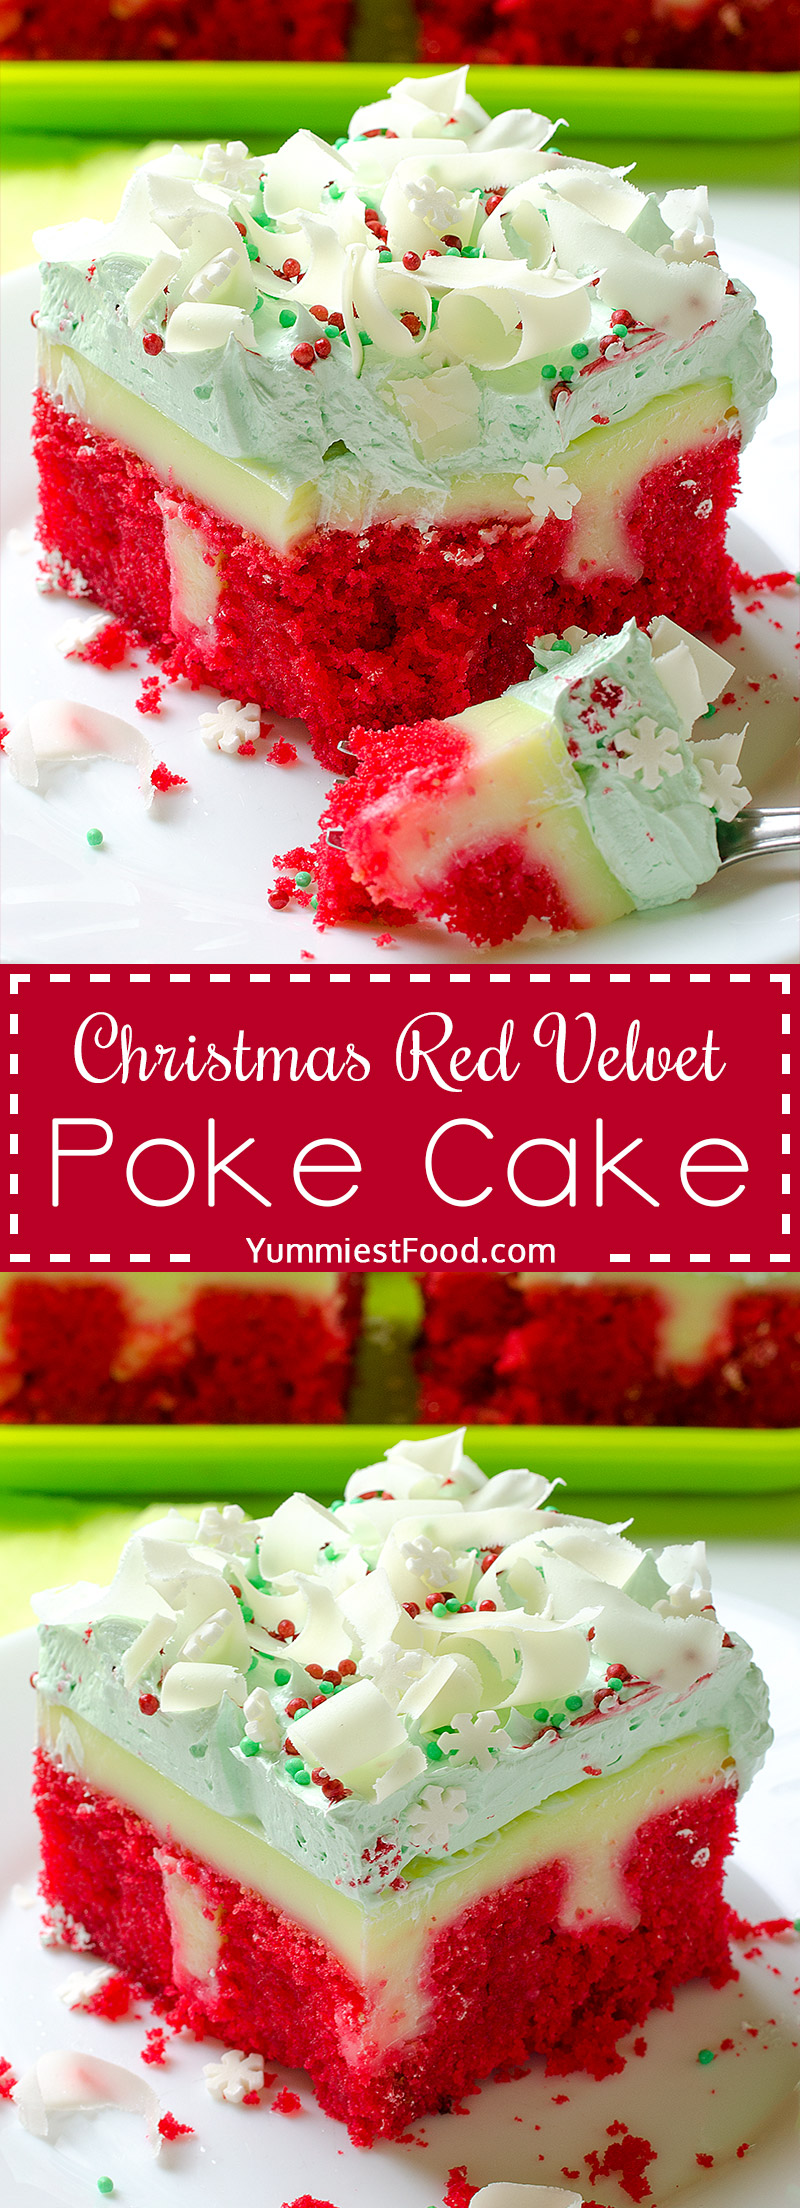 Christmas Red Velvet Poke Cake Recipe - very tasty, rich and moist! A taste of Christmas in every bite of this delicious Poke Cake